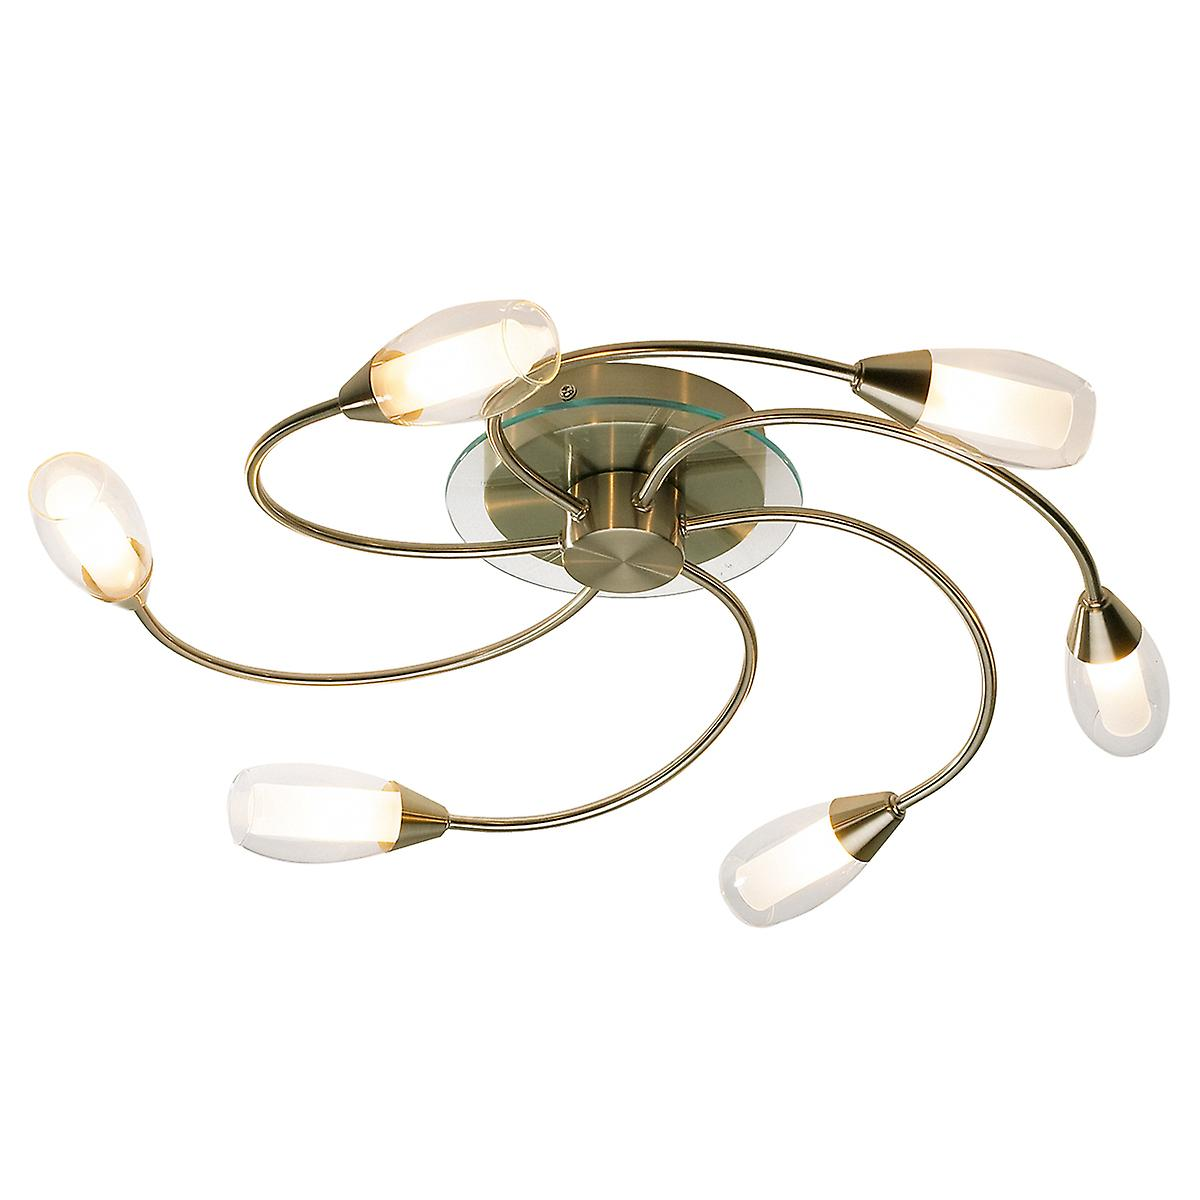 Dar TUG0675 Tugel Traditional 6 Light Ceiling Fitting In Antique Brass